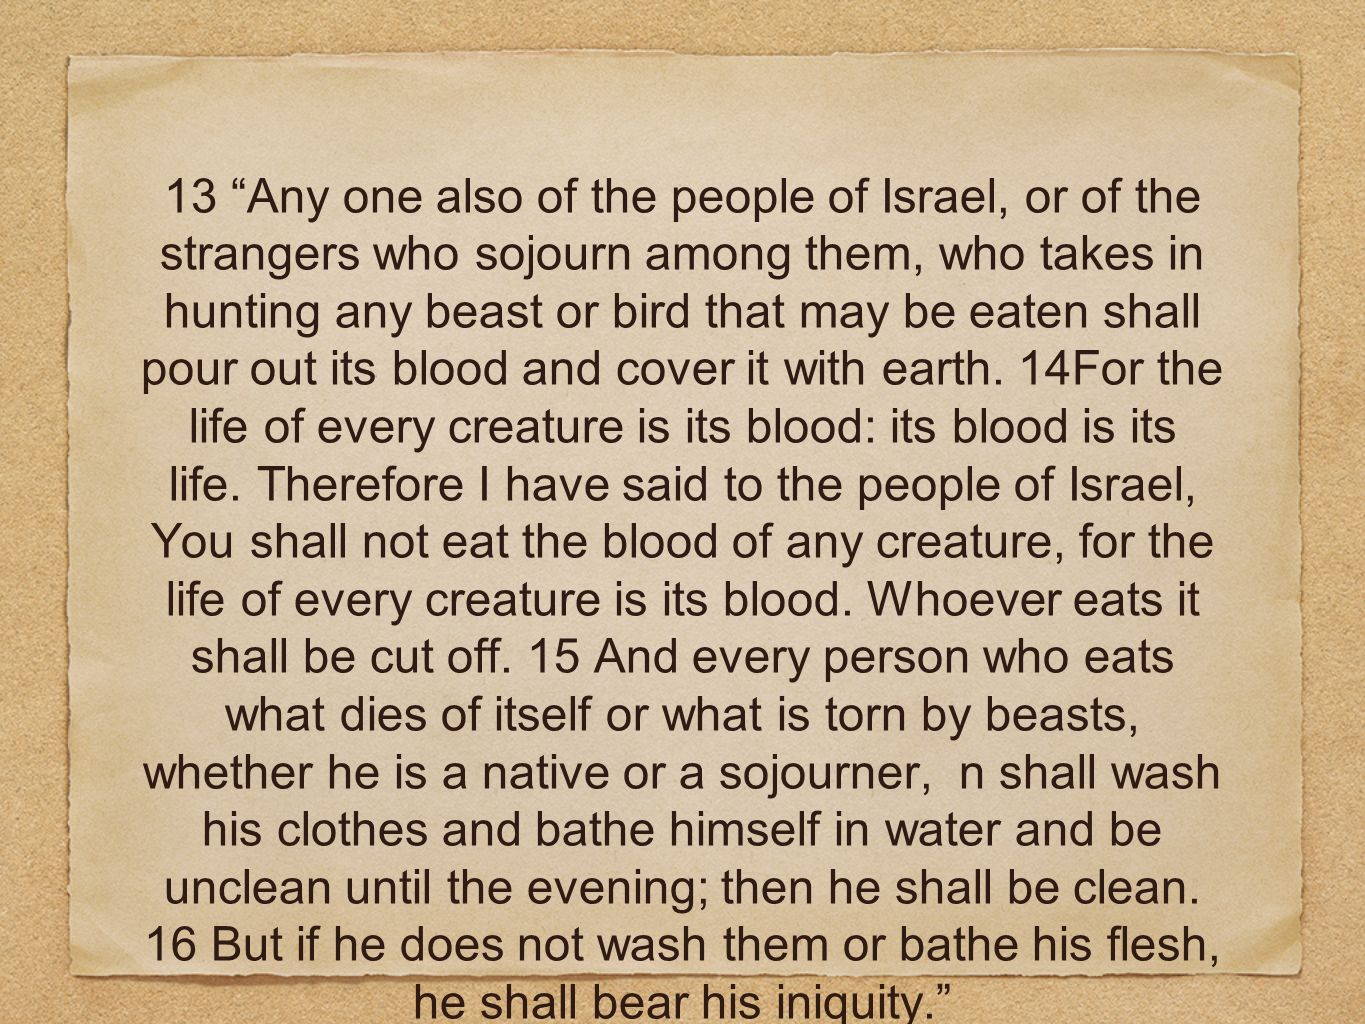 13 Any one also of the people of Israel, or of the strangers who sojourn among them, who takes in hunting any beast or bird that may be eaten shall pour out its blood and cover it with earth.